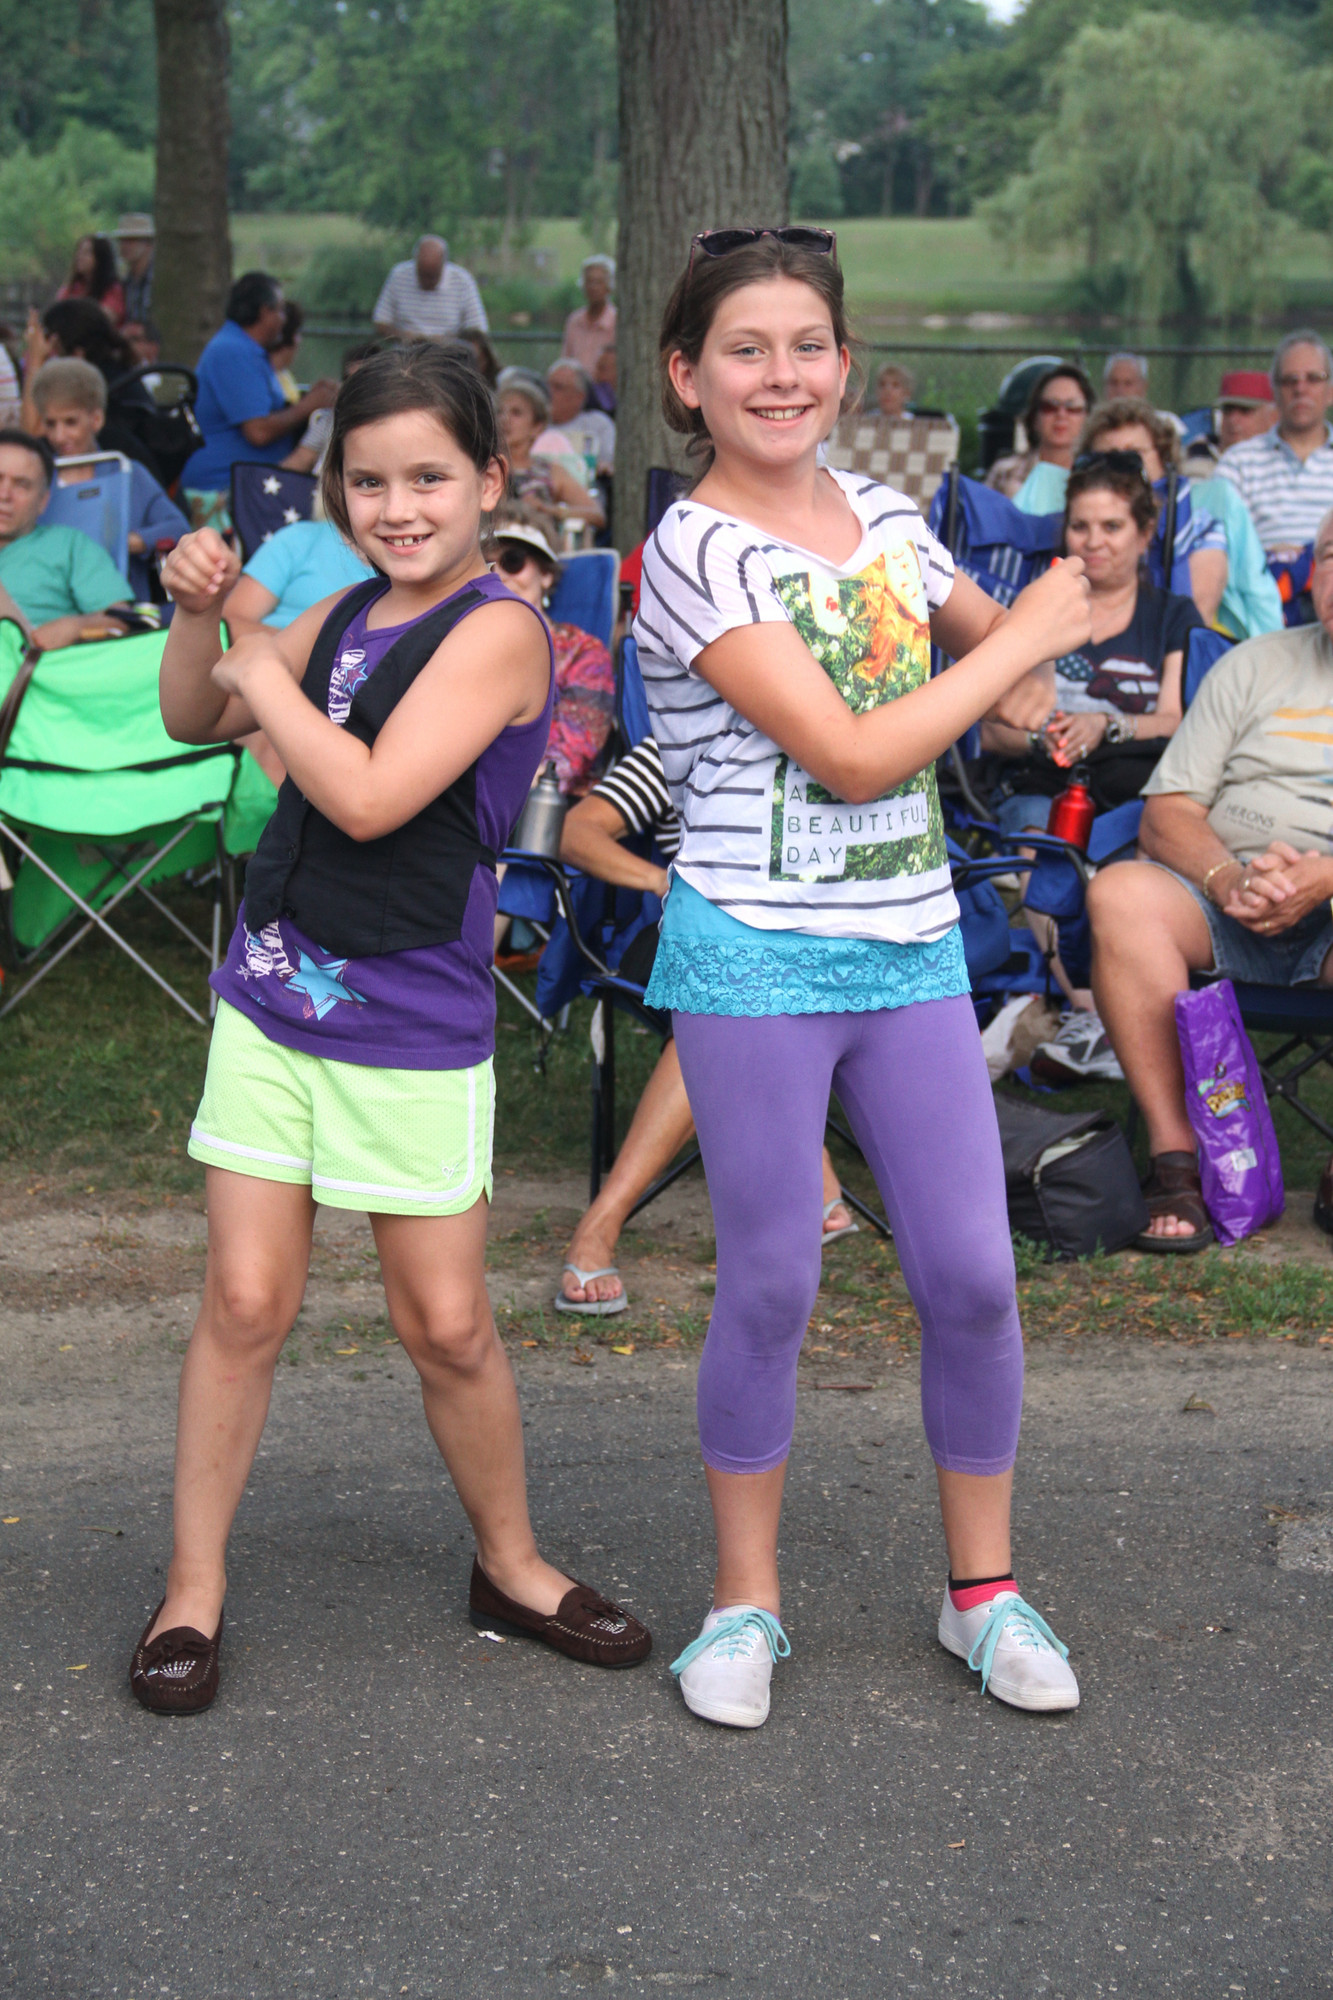 Kayla and Kerry Stuparich danced to the tunes performed by The Jersey Four.